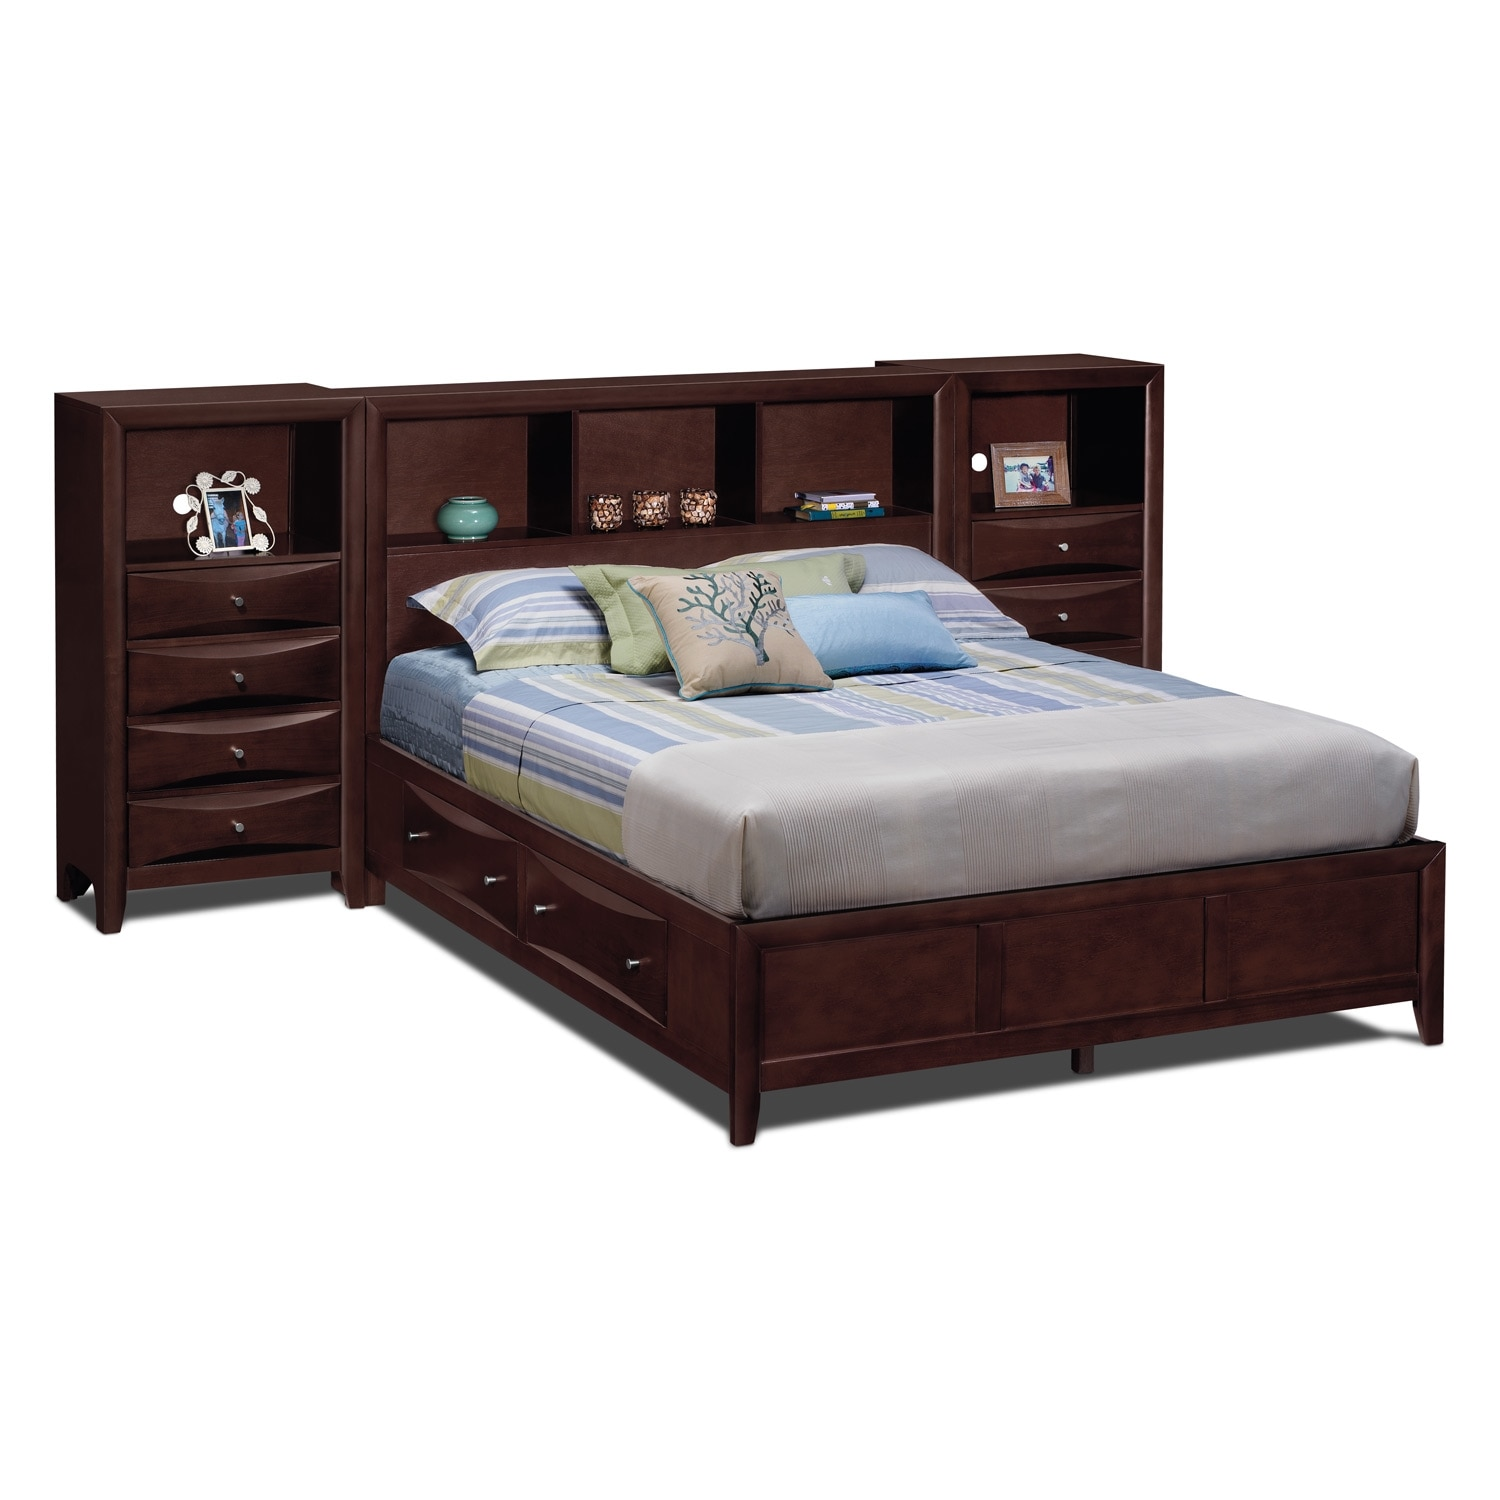 [Clarion King Wall Bed with Piers]